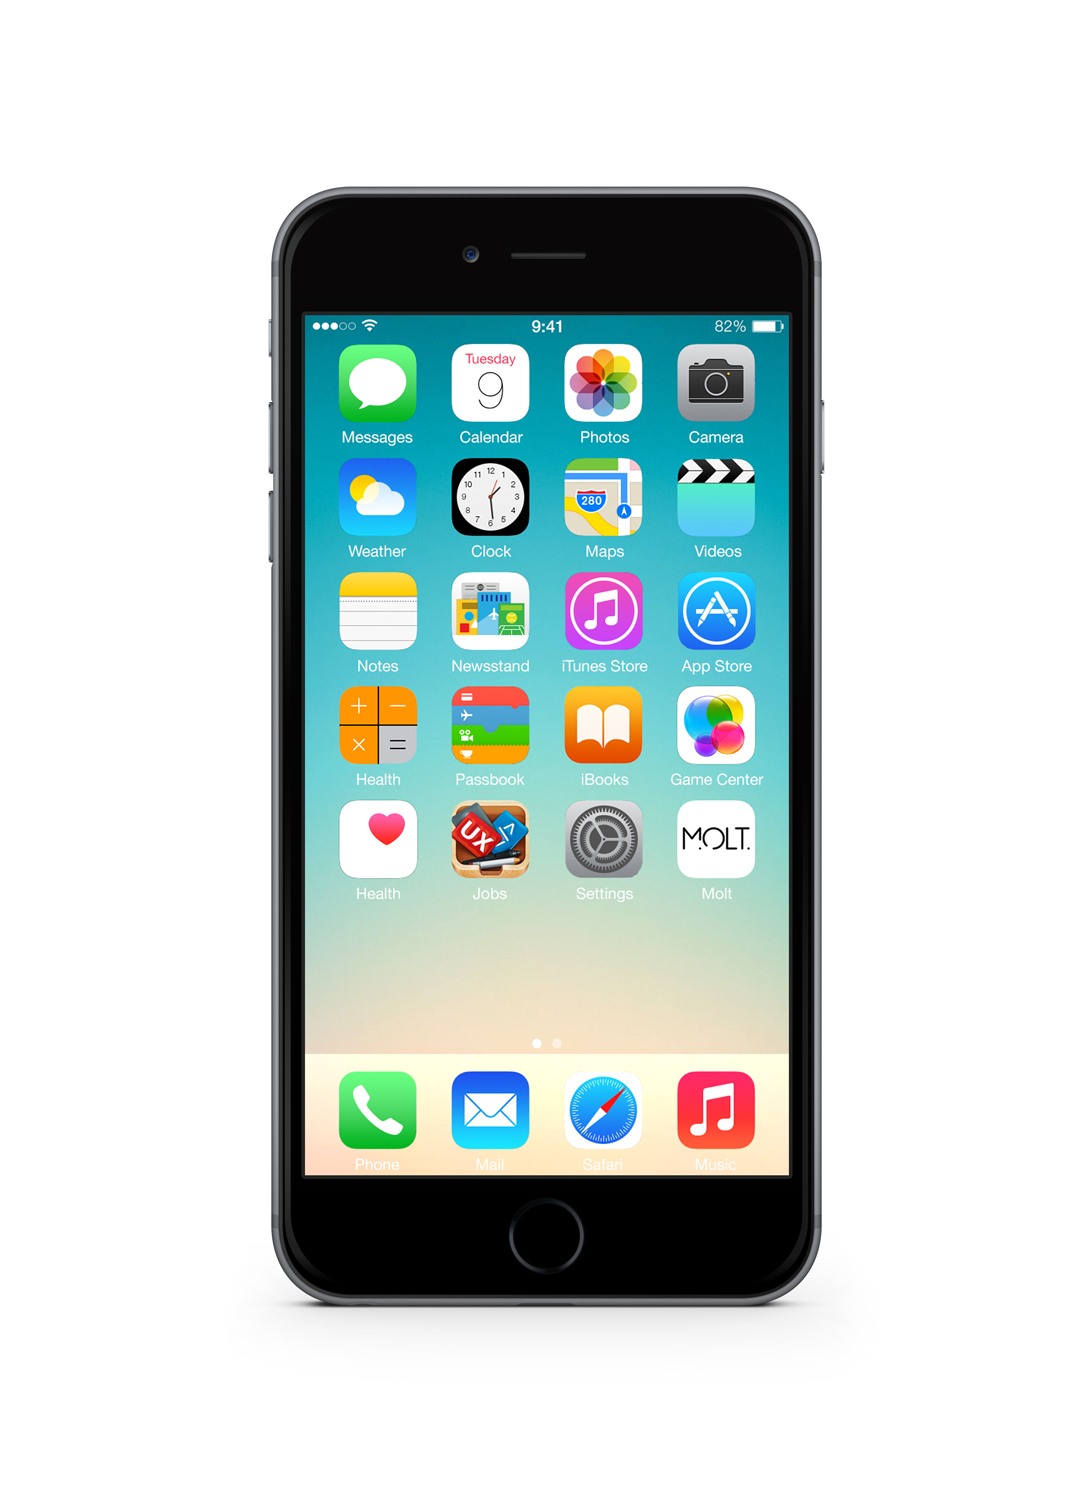 Molt_Iphone6_Mockup_v2.jpg